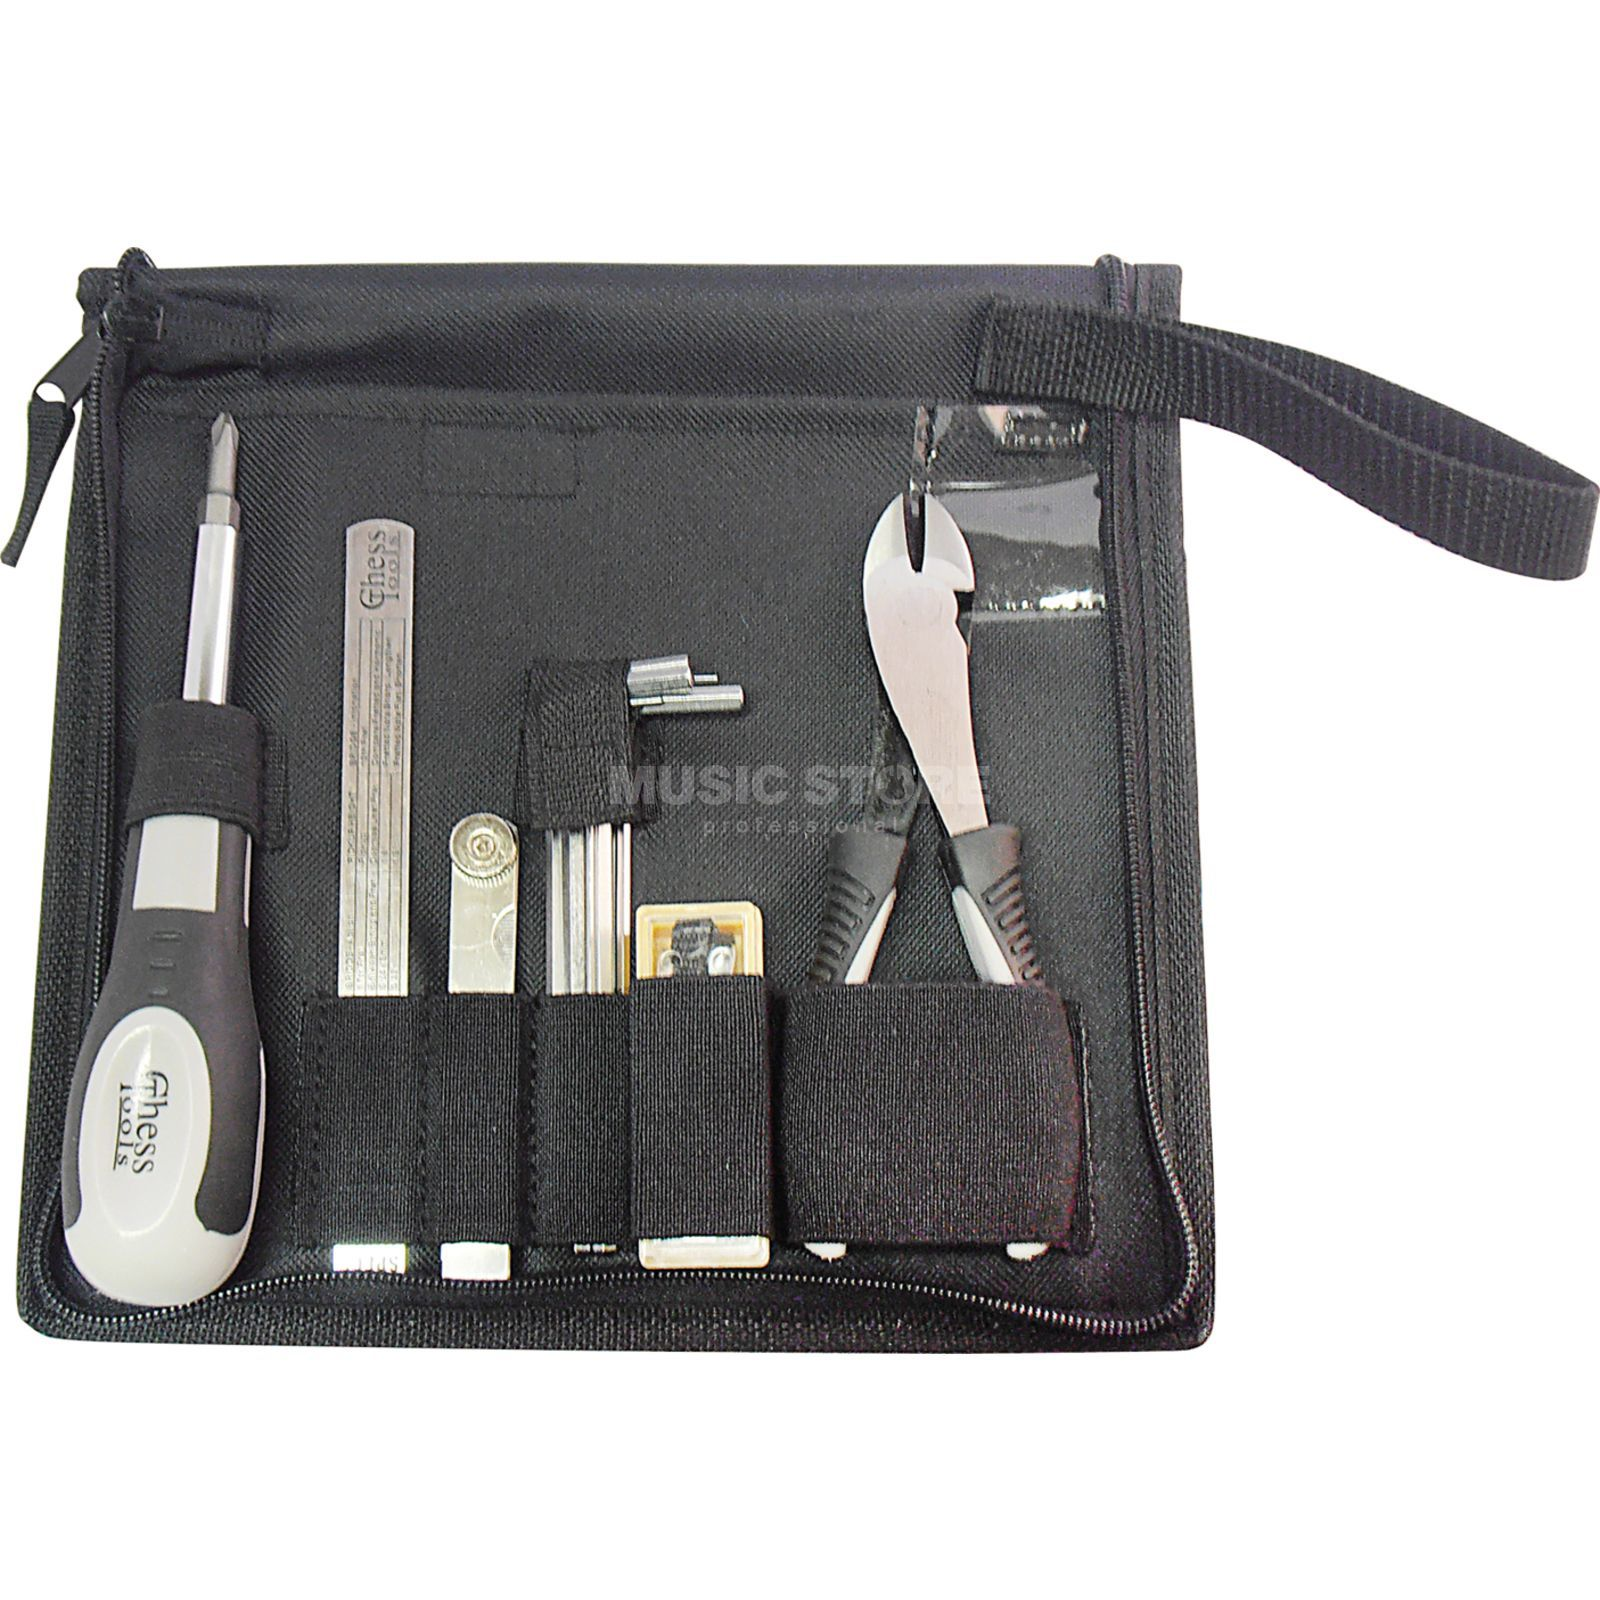 Chess Tools CT-416 Bass Tool Set Produktbillede